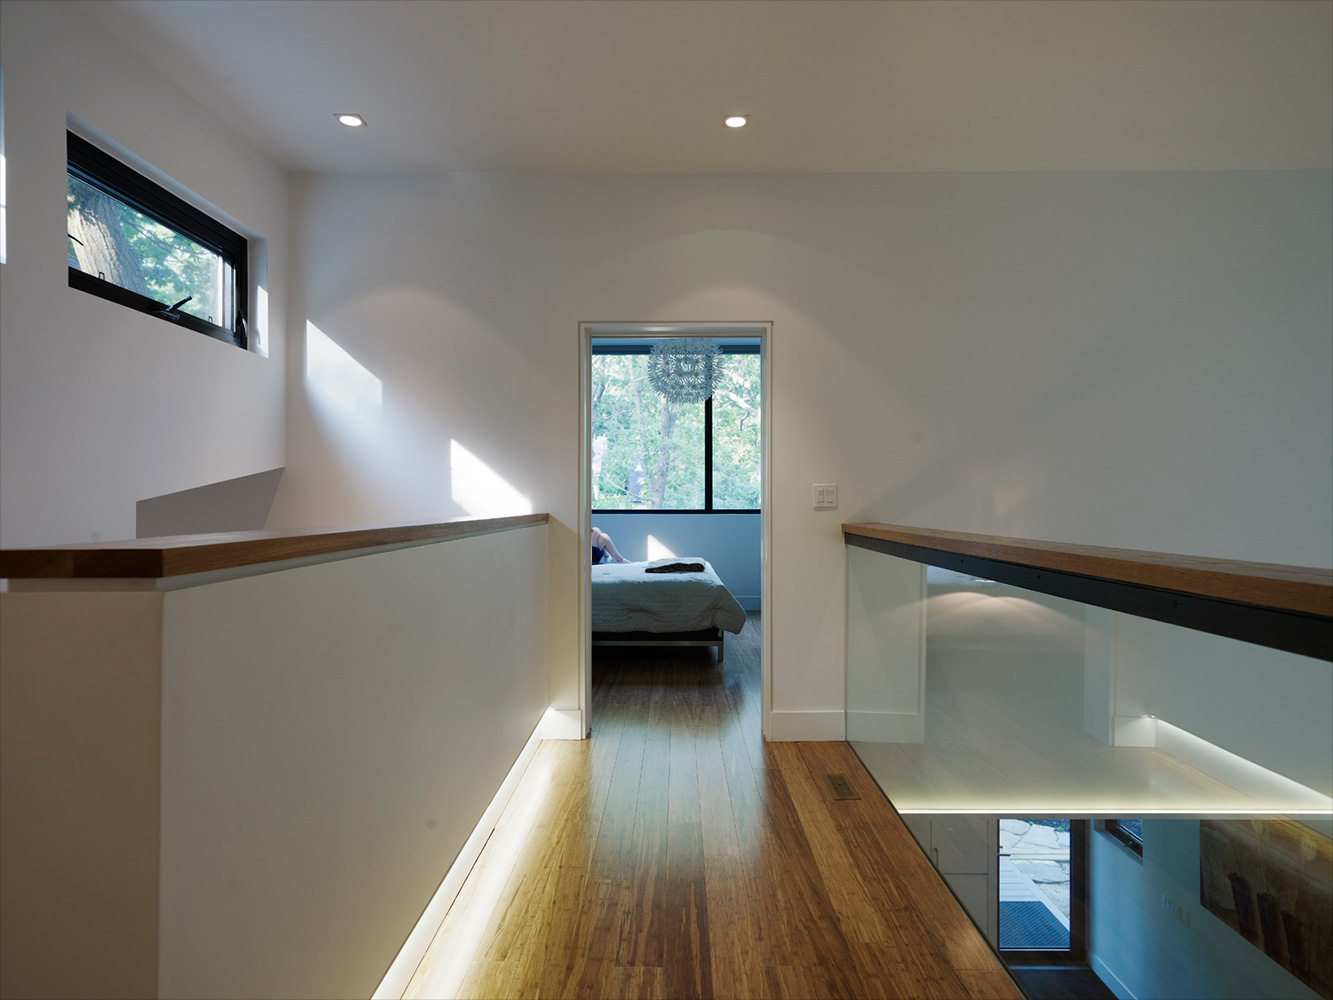 Upstairs hallway open to floor below with continuous wood handrail and glass guard with recessed lighting